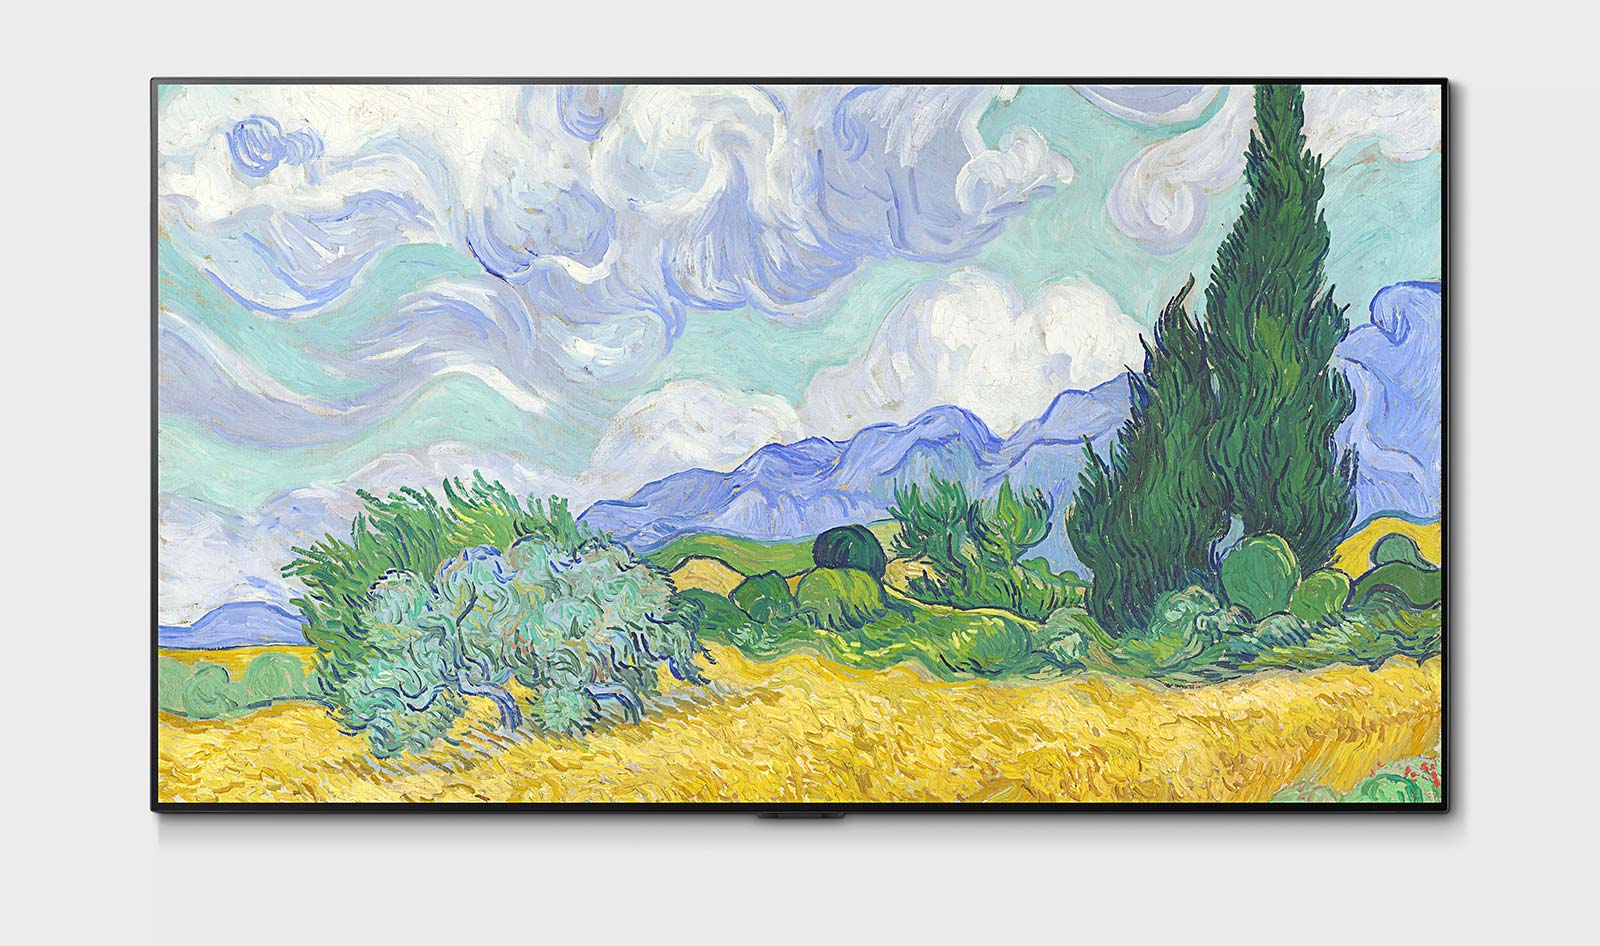 The LG G1 OLED TV is kind of built to look like a gallery frame, but uses organic light emitting diodes for the visuals.